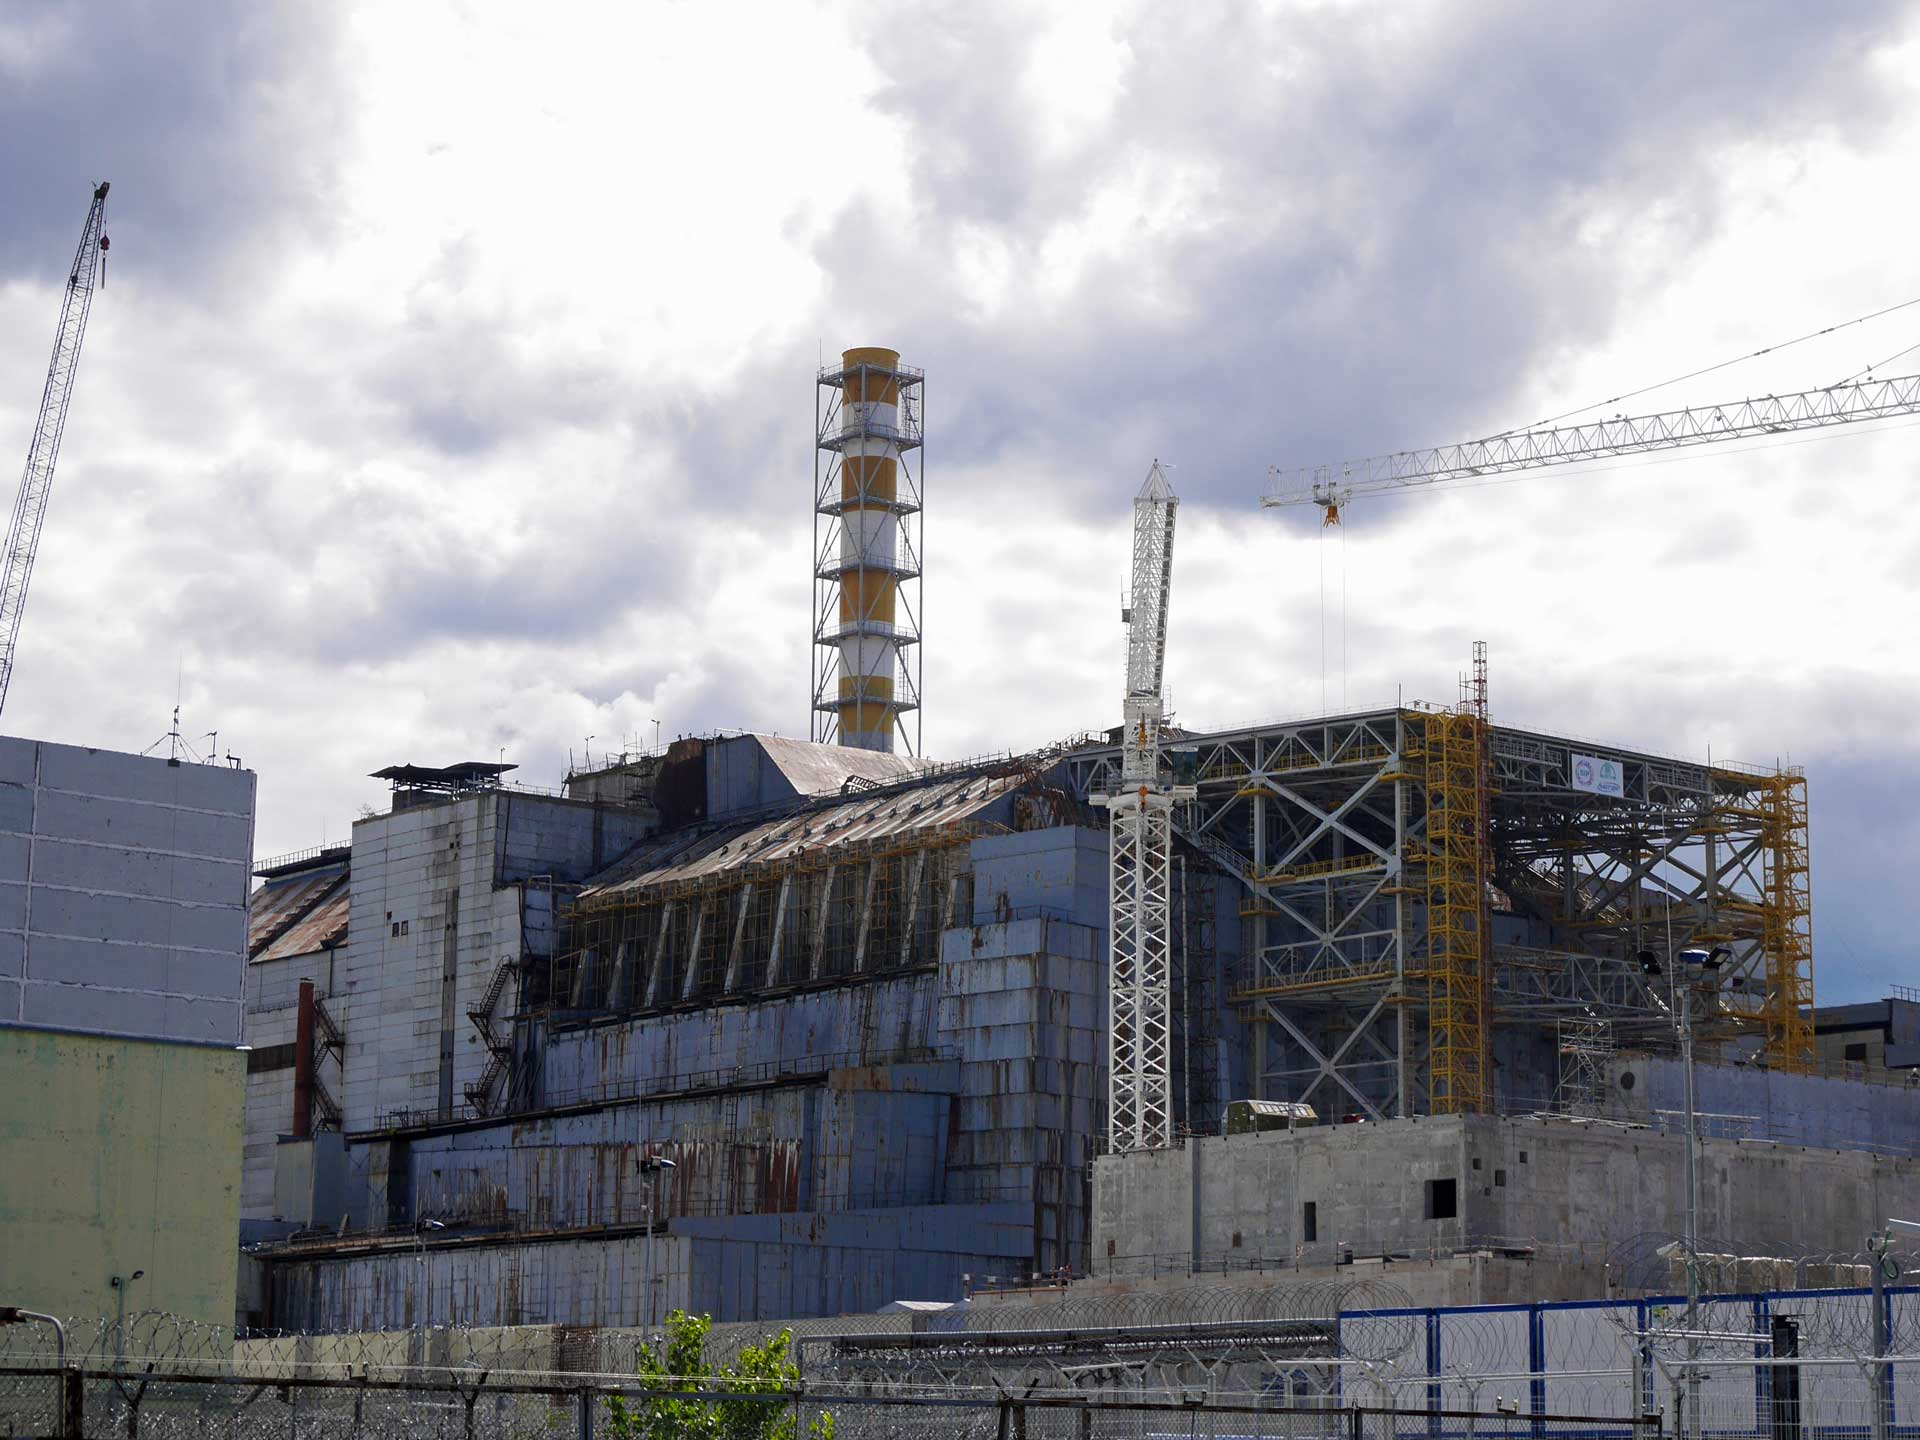 chernobyl-power-plant-reactor-4-3